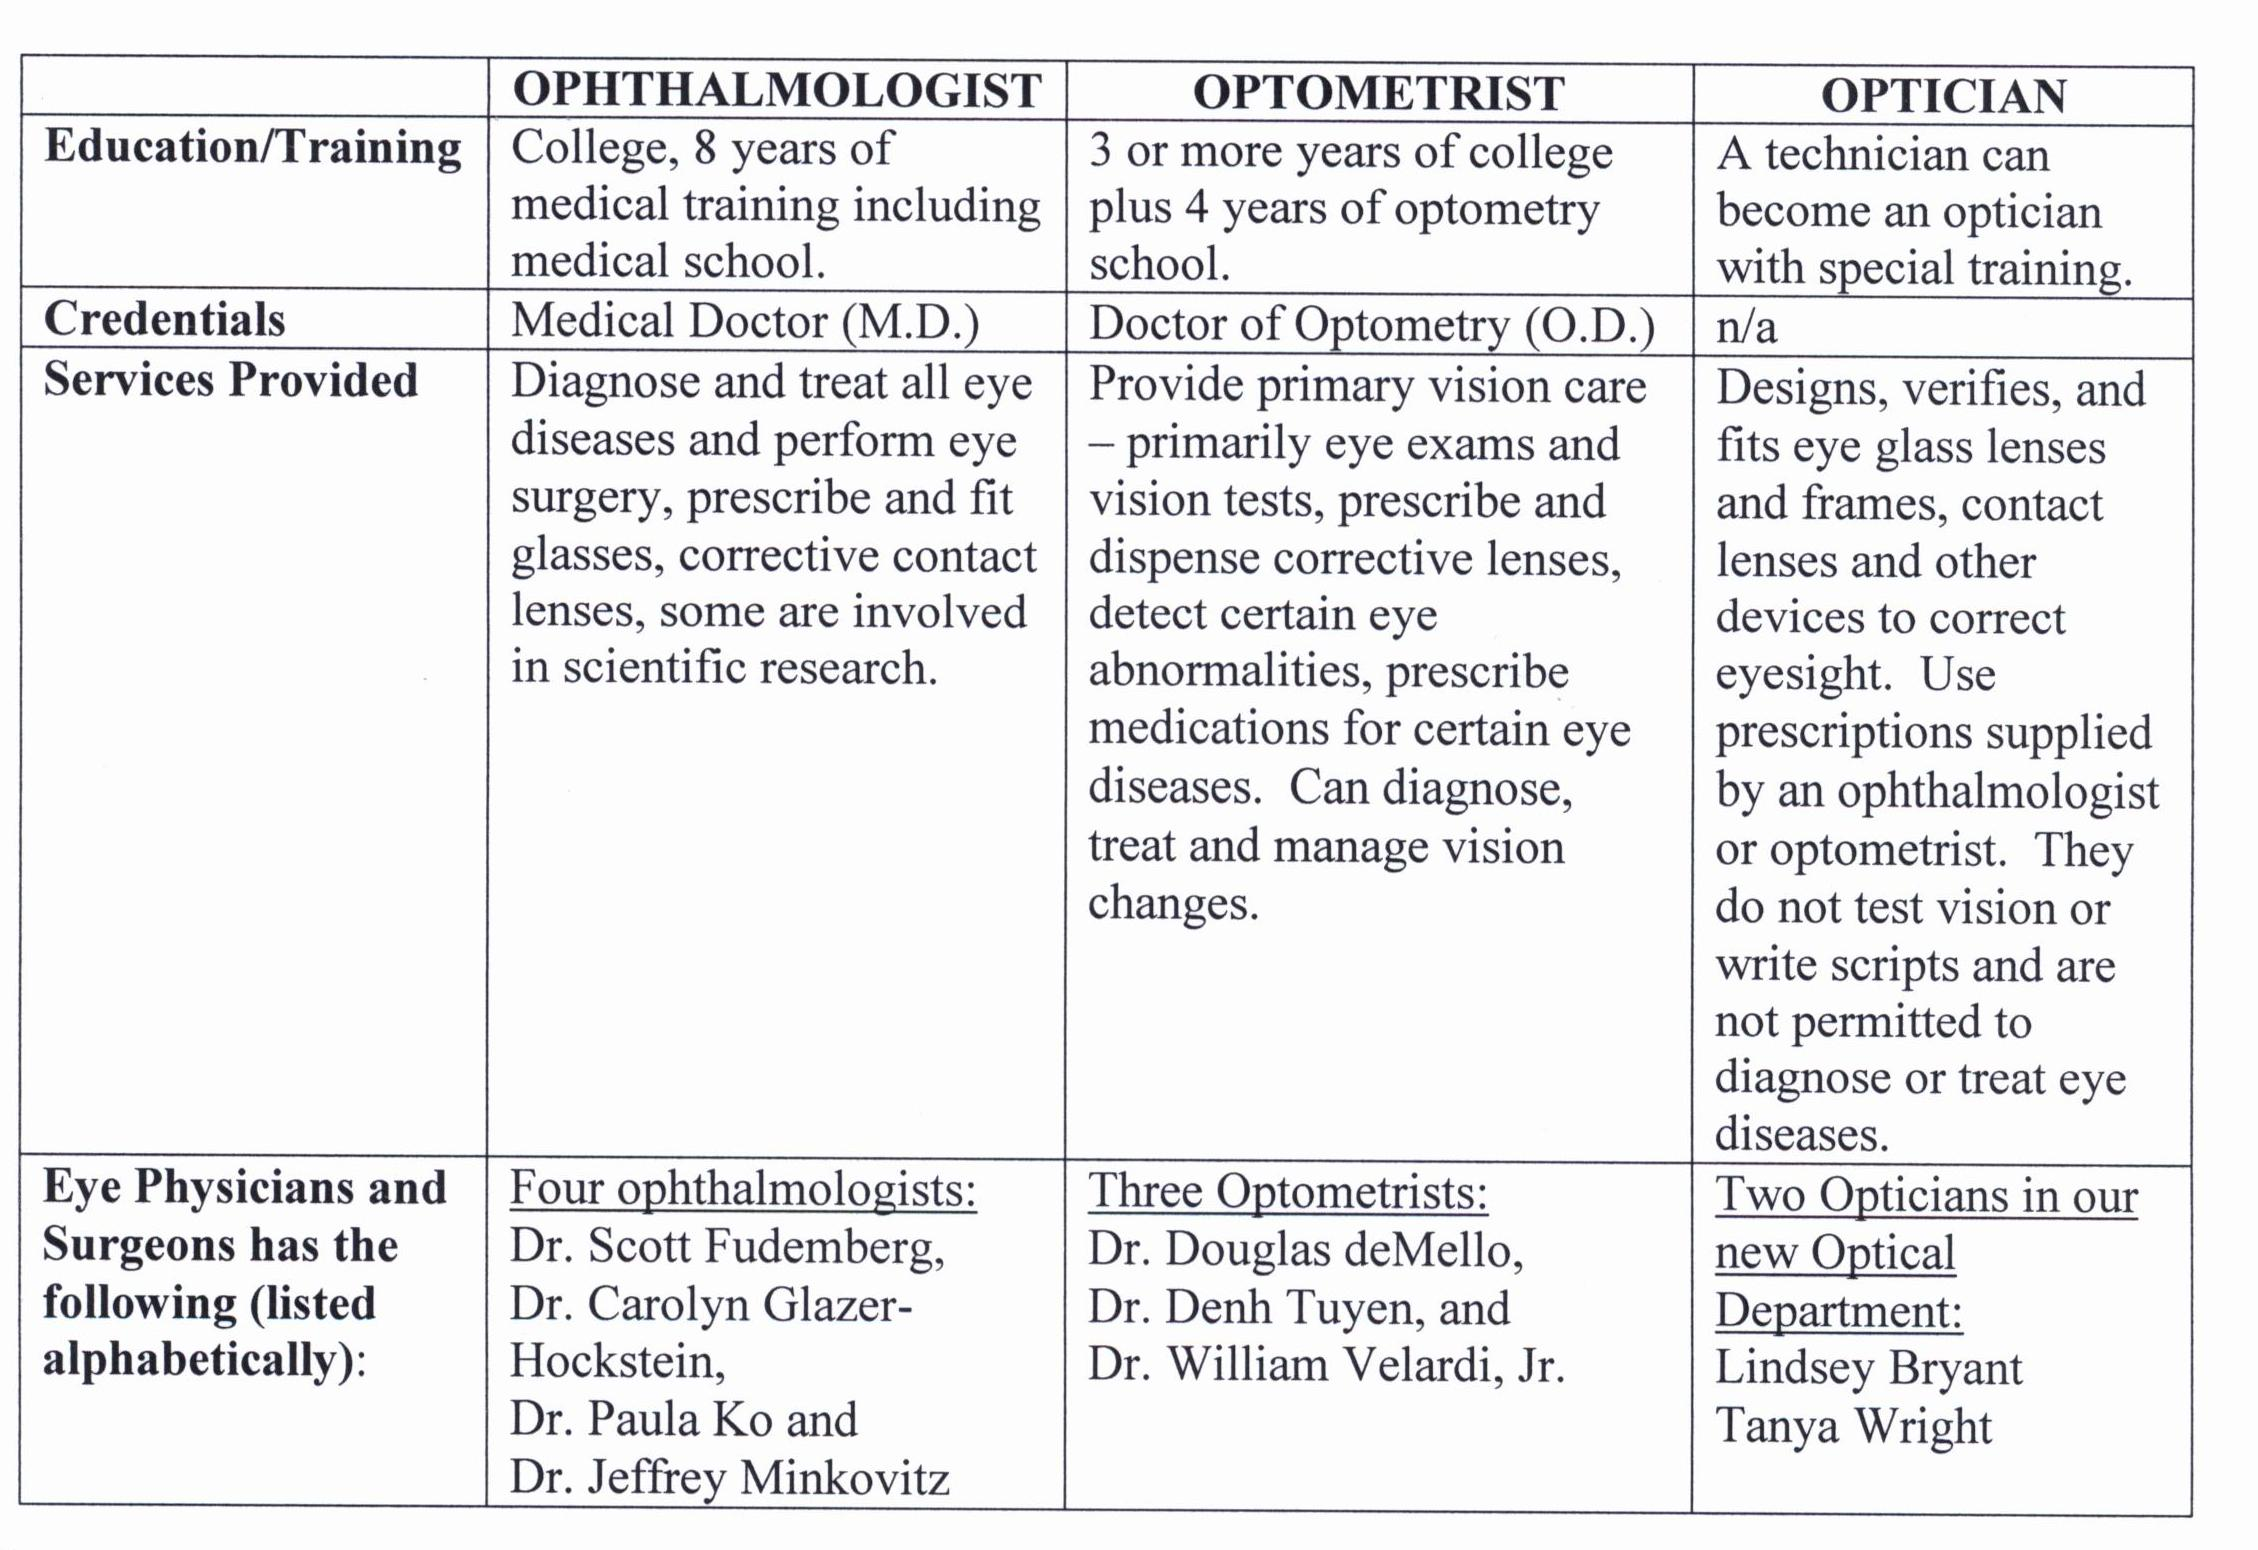 Ophthalmologist, Optometrist, Optician, Subspecial - WEEKLY